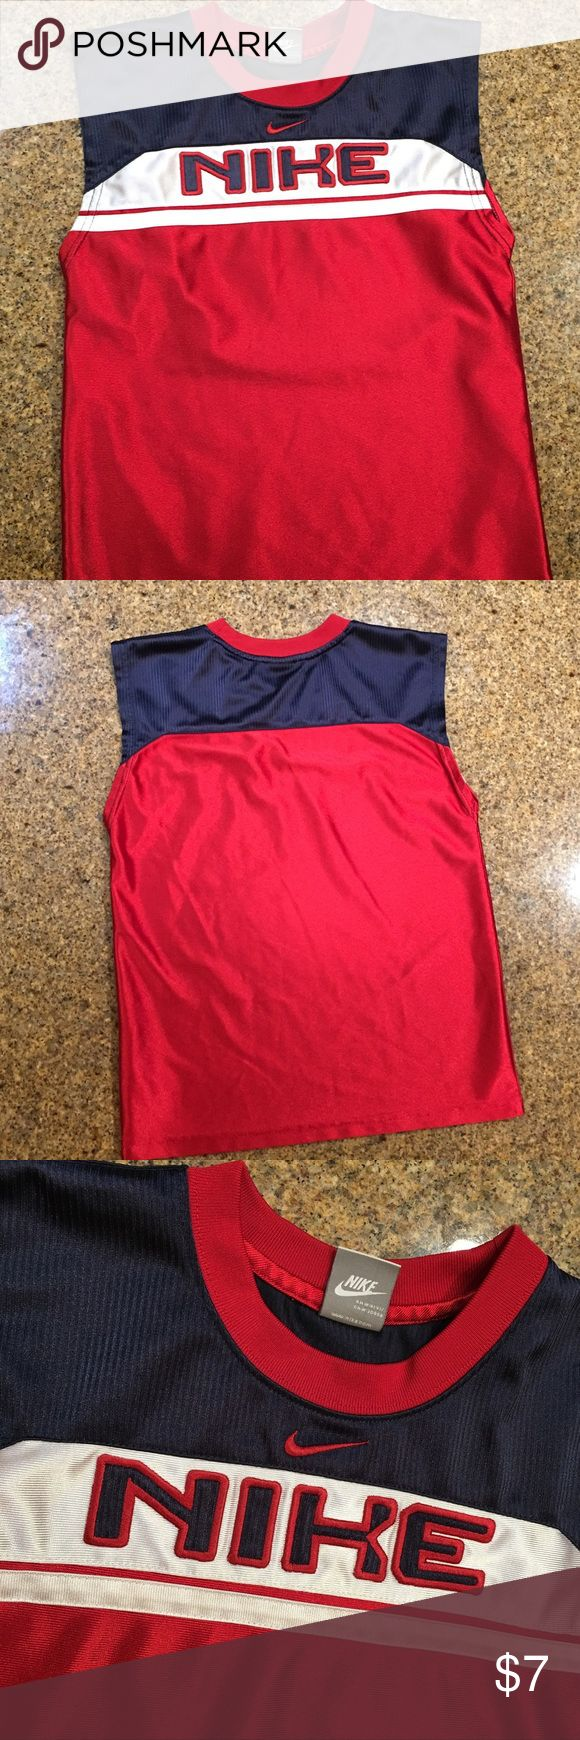 Boys Nike tank top Boys Nike tank top used but in great condition Nike Shirts & Tops Tank Tops